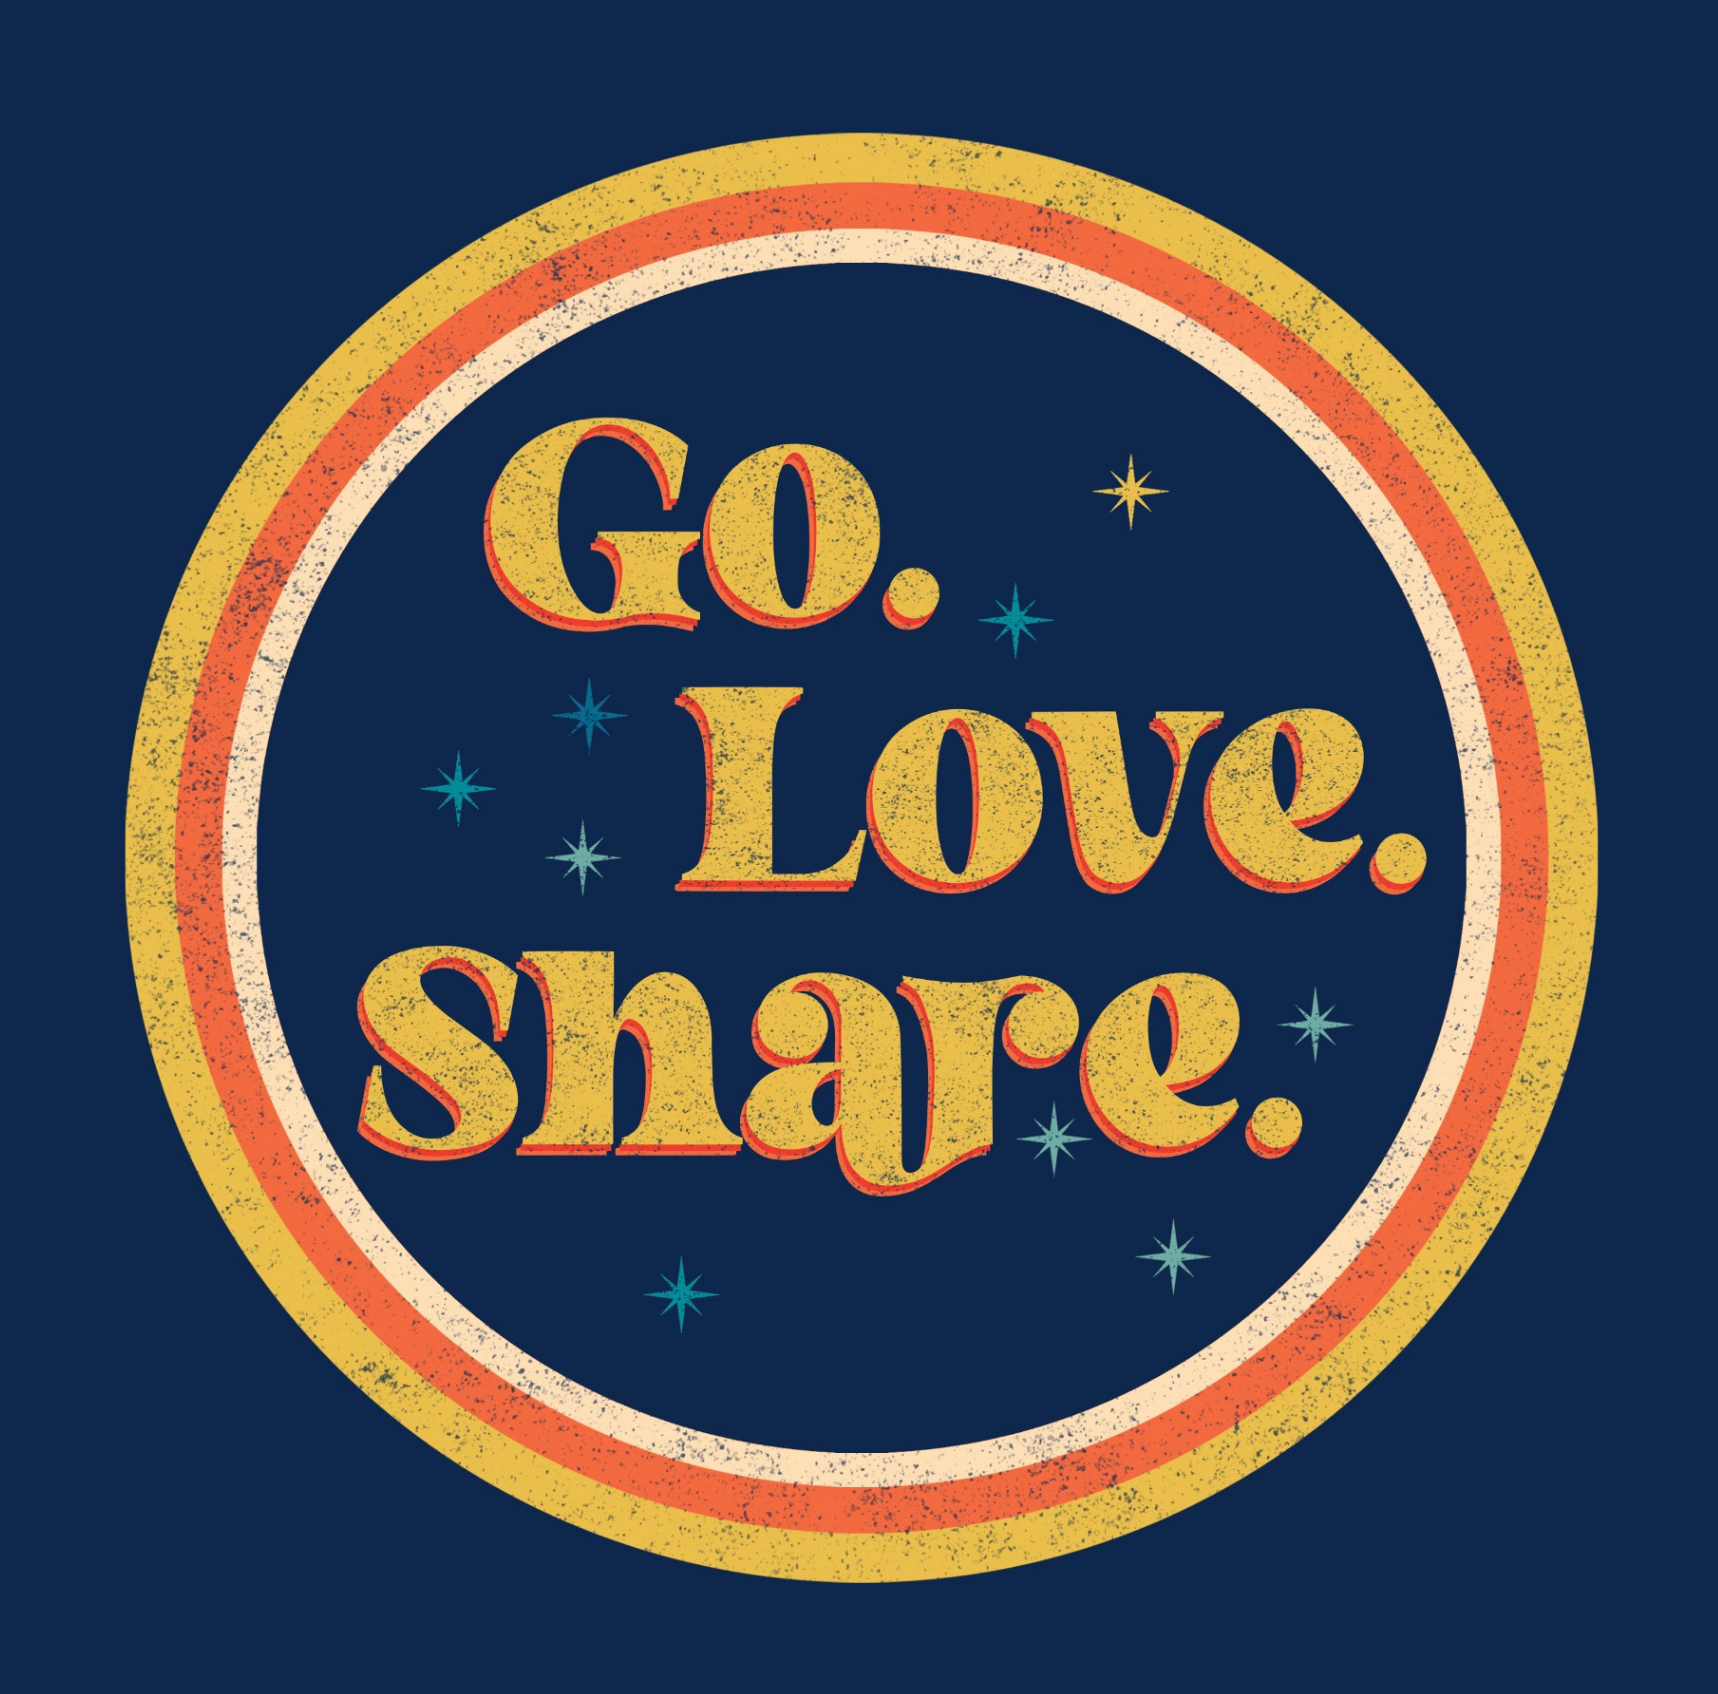 Mission Trip - Go. Love. Share.